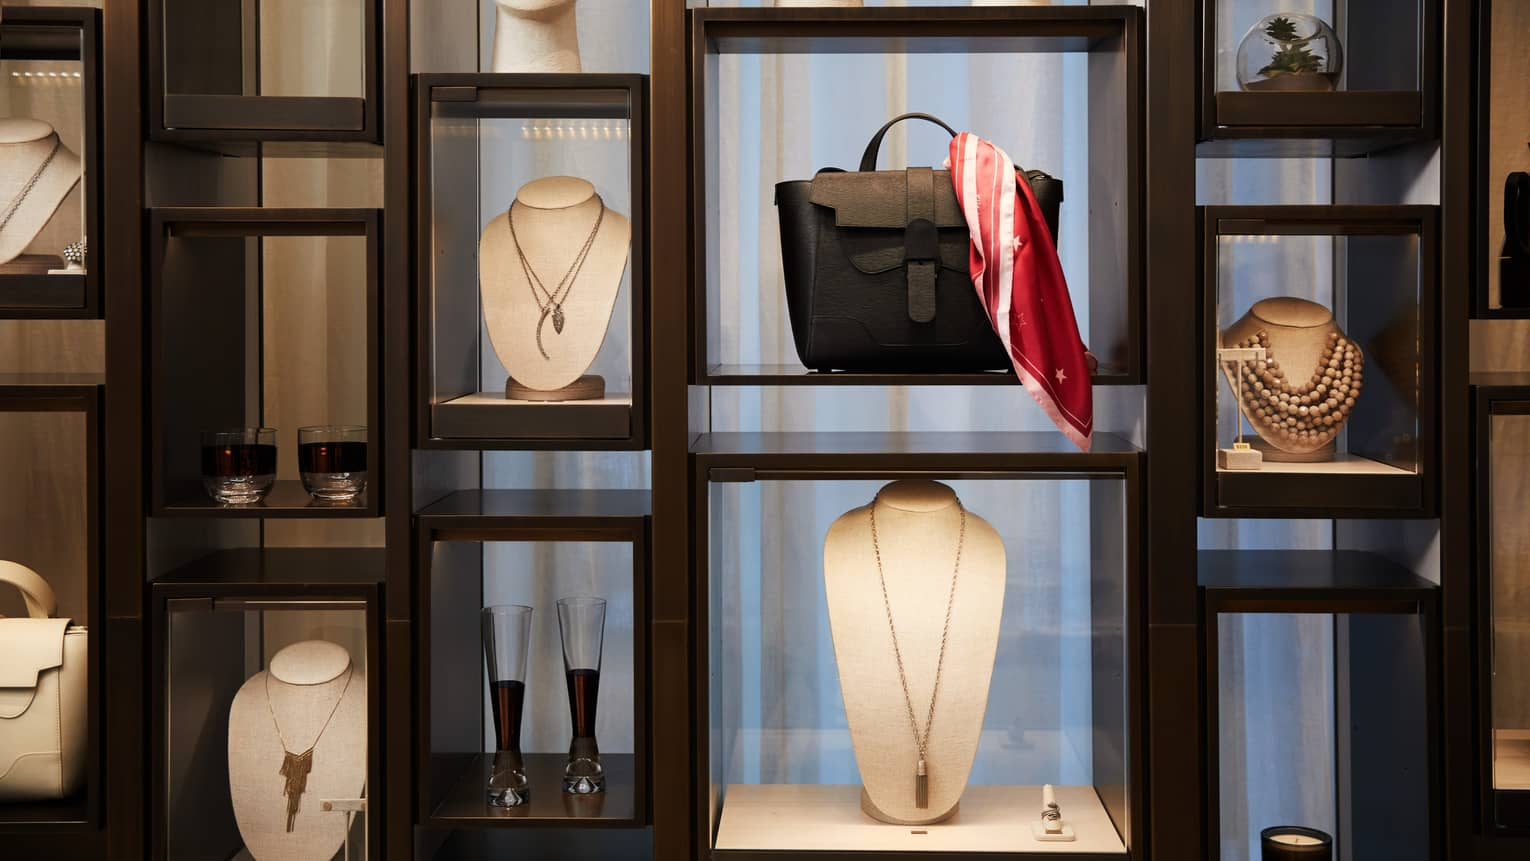 Boutique retail store shelf with designer necklaces, handbag, cocktail glasses